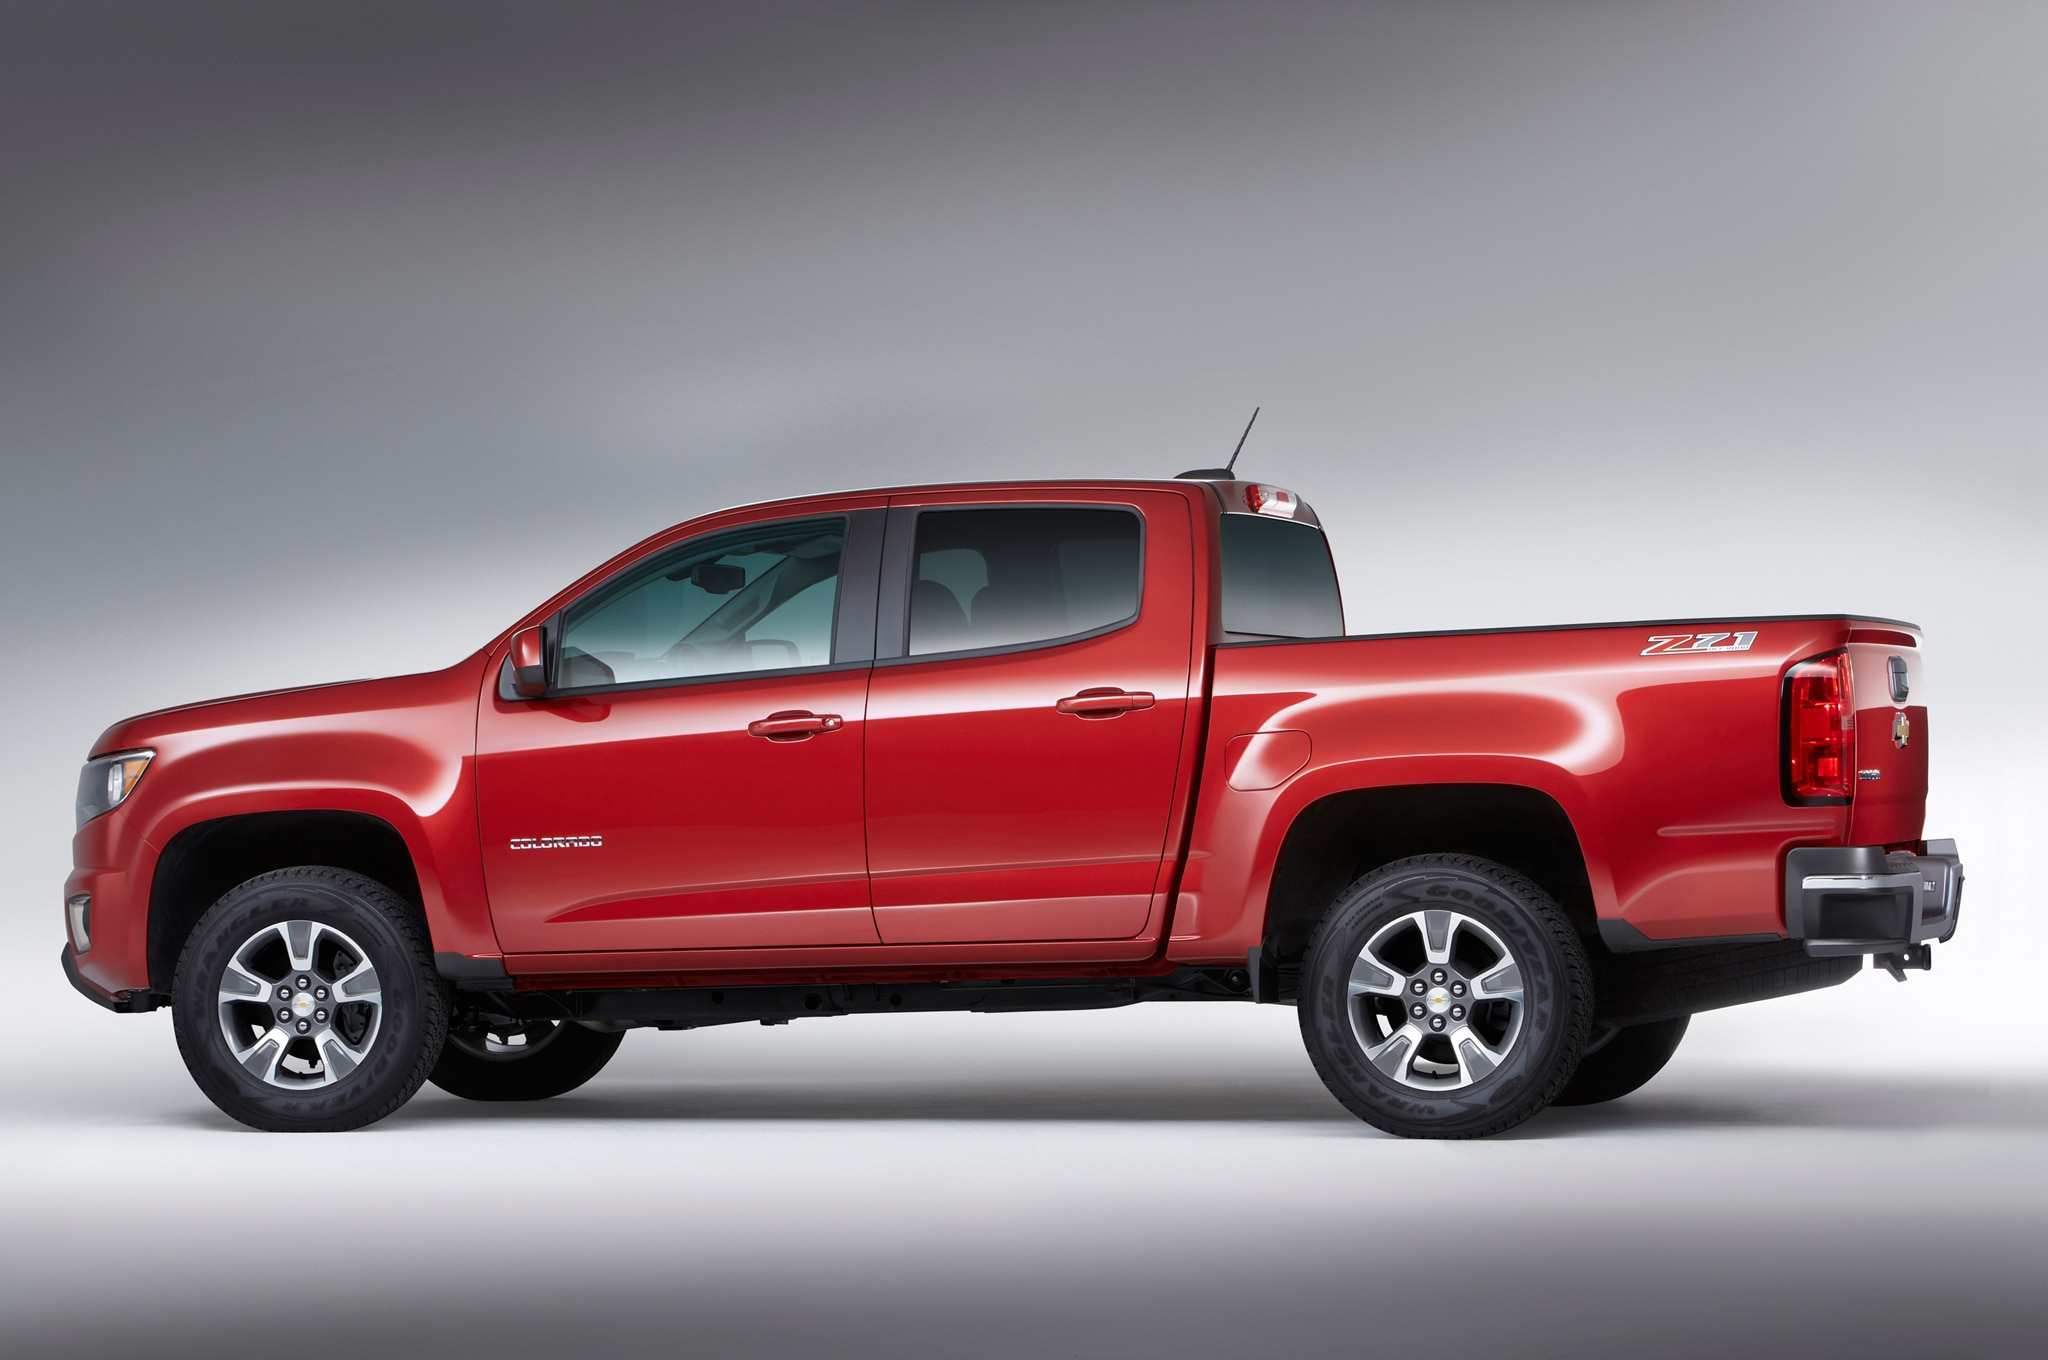 2015 Chevrolet Colorado rear three quarters